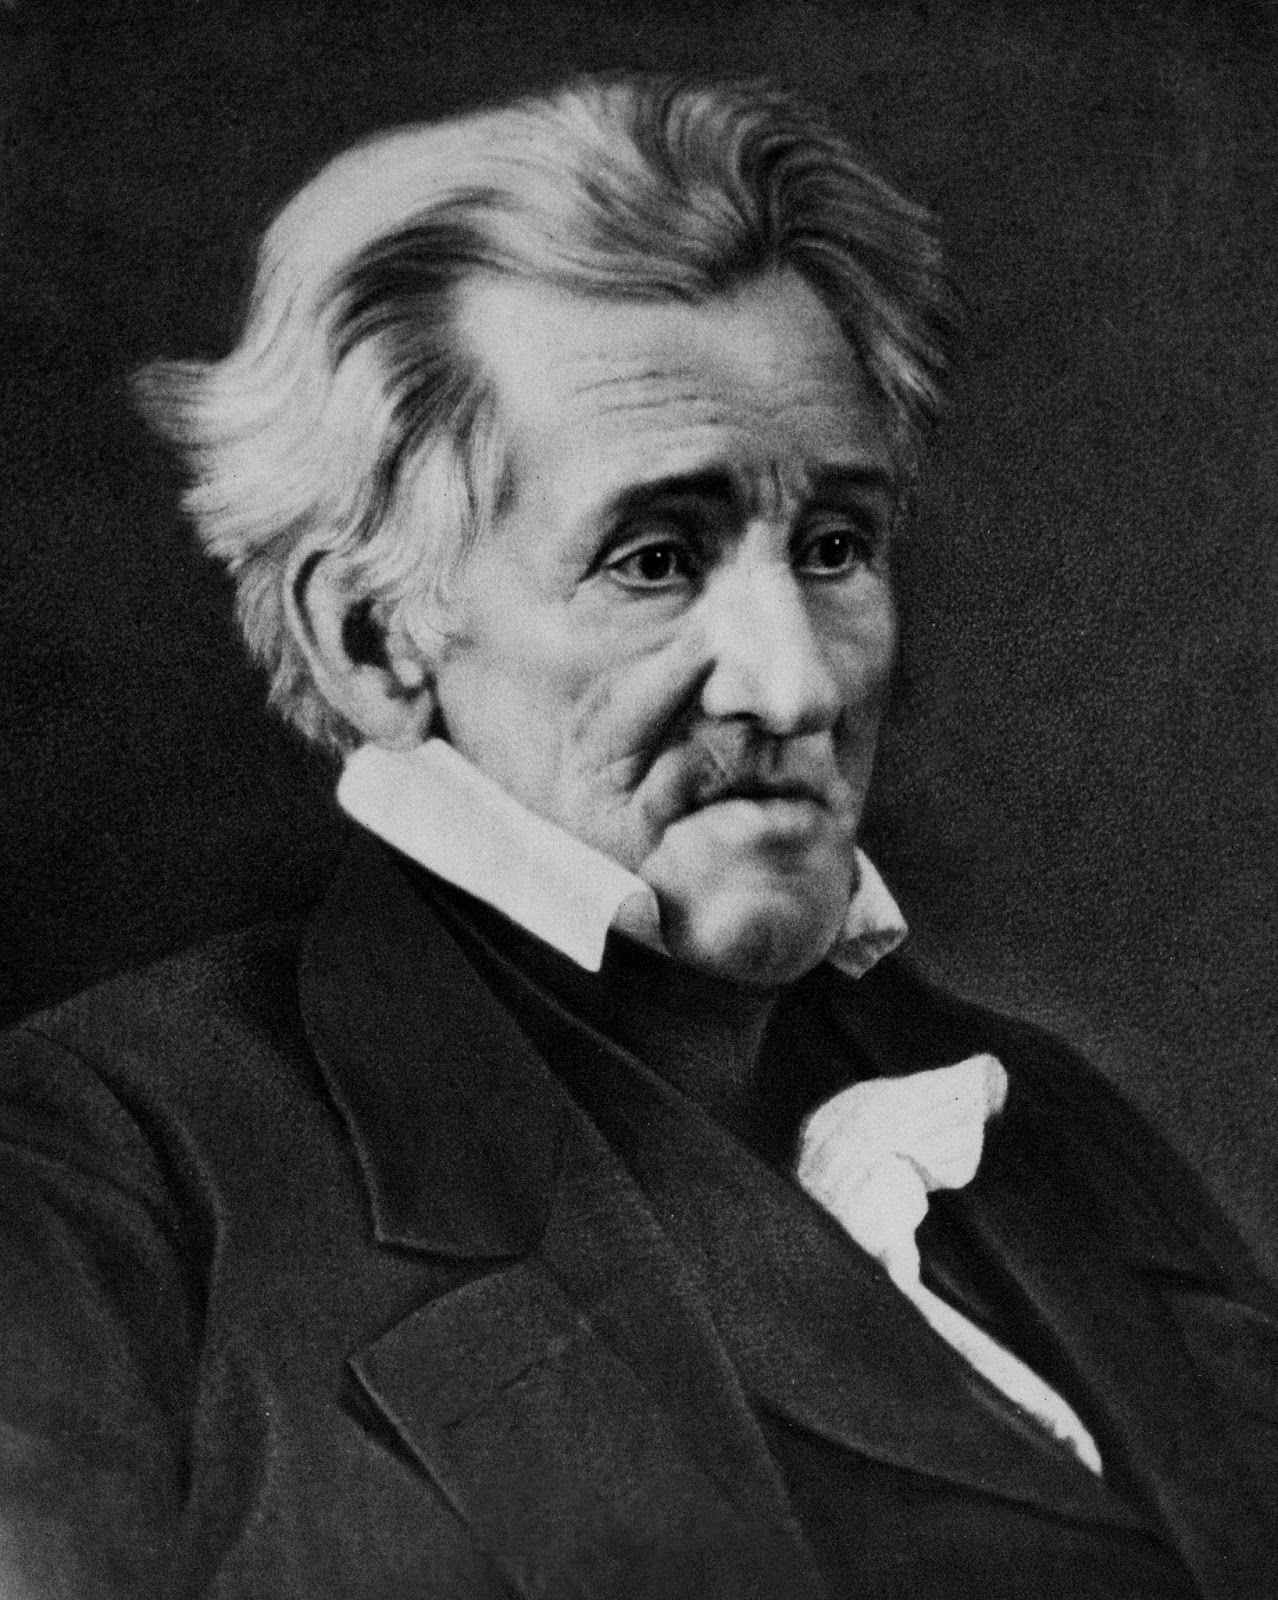 andrew jackson man of the people essay Andrew jackson 1767-1845 a brief biography andrew jackson's era who were soon to copy the populist methods and hero and man of the people.